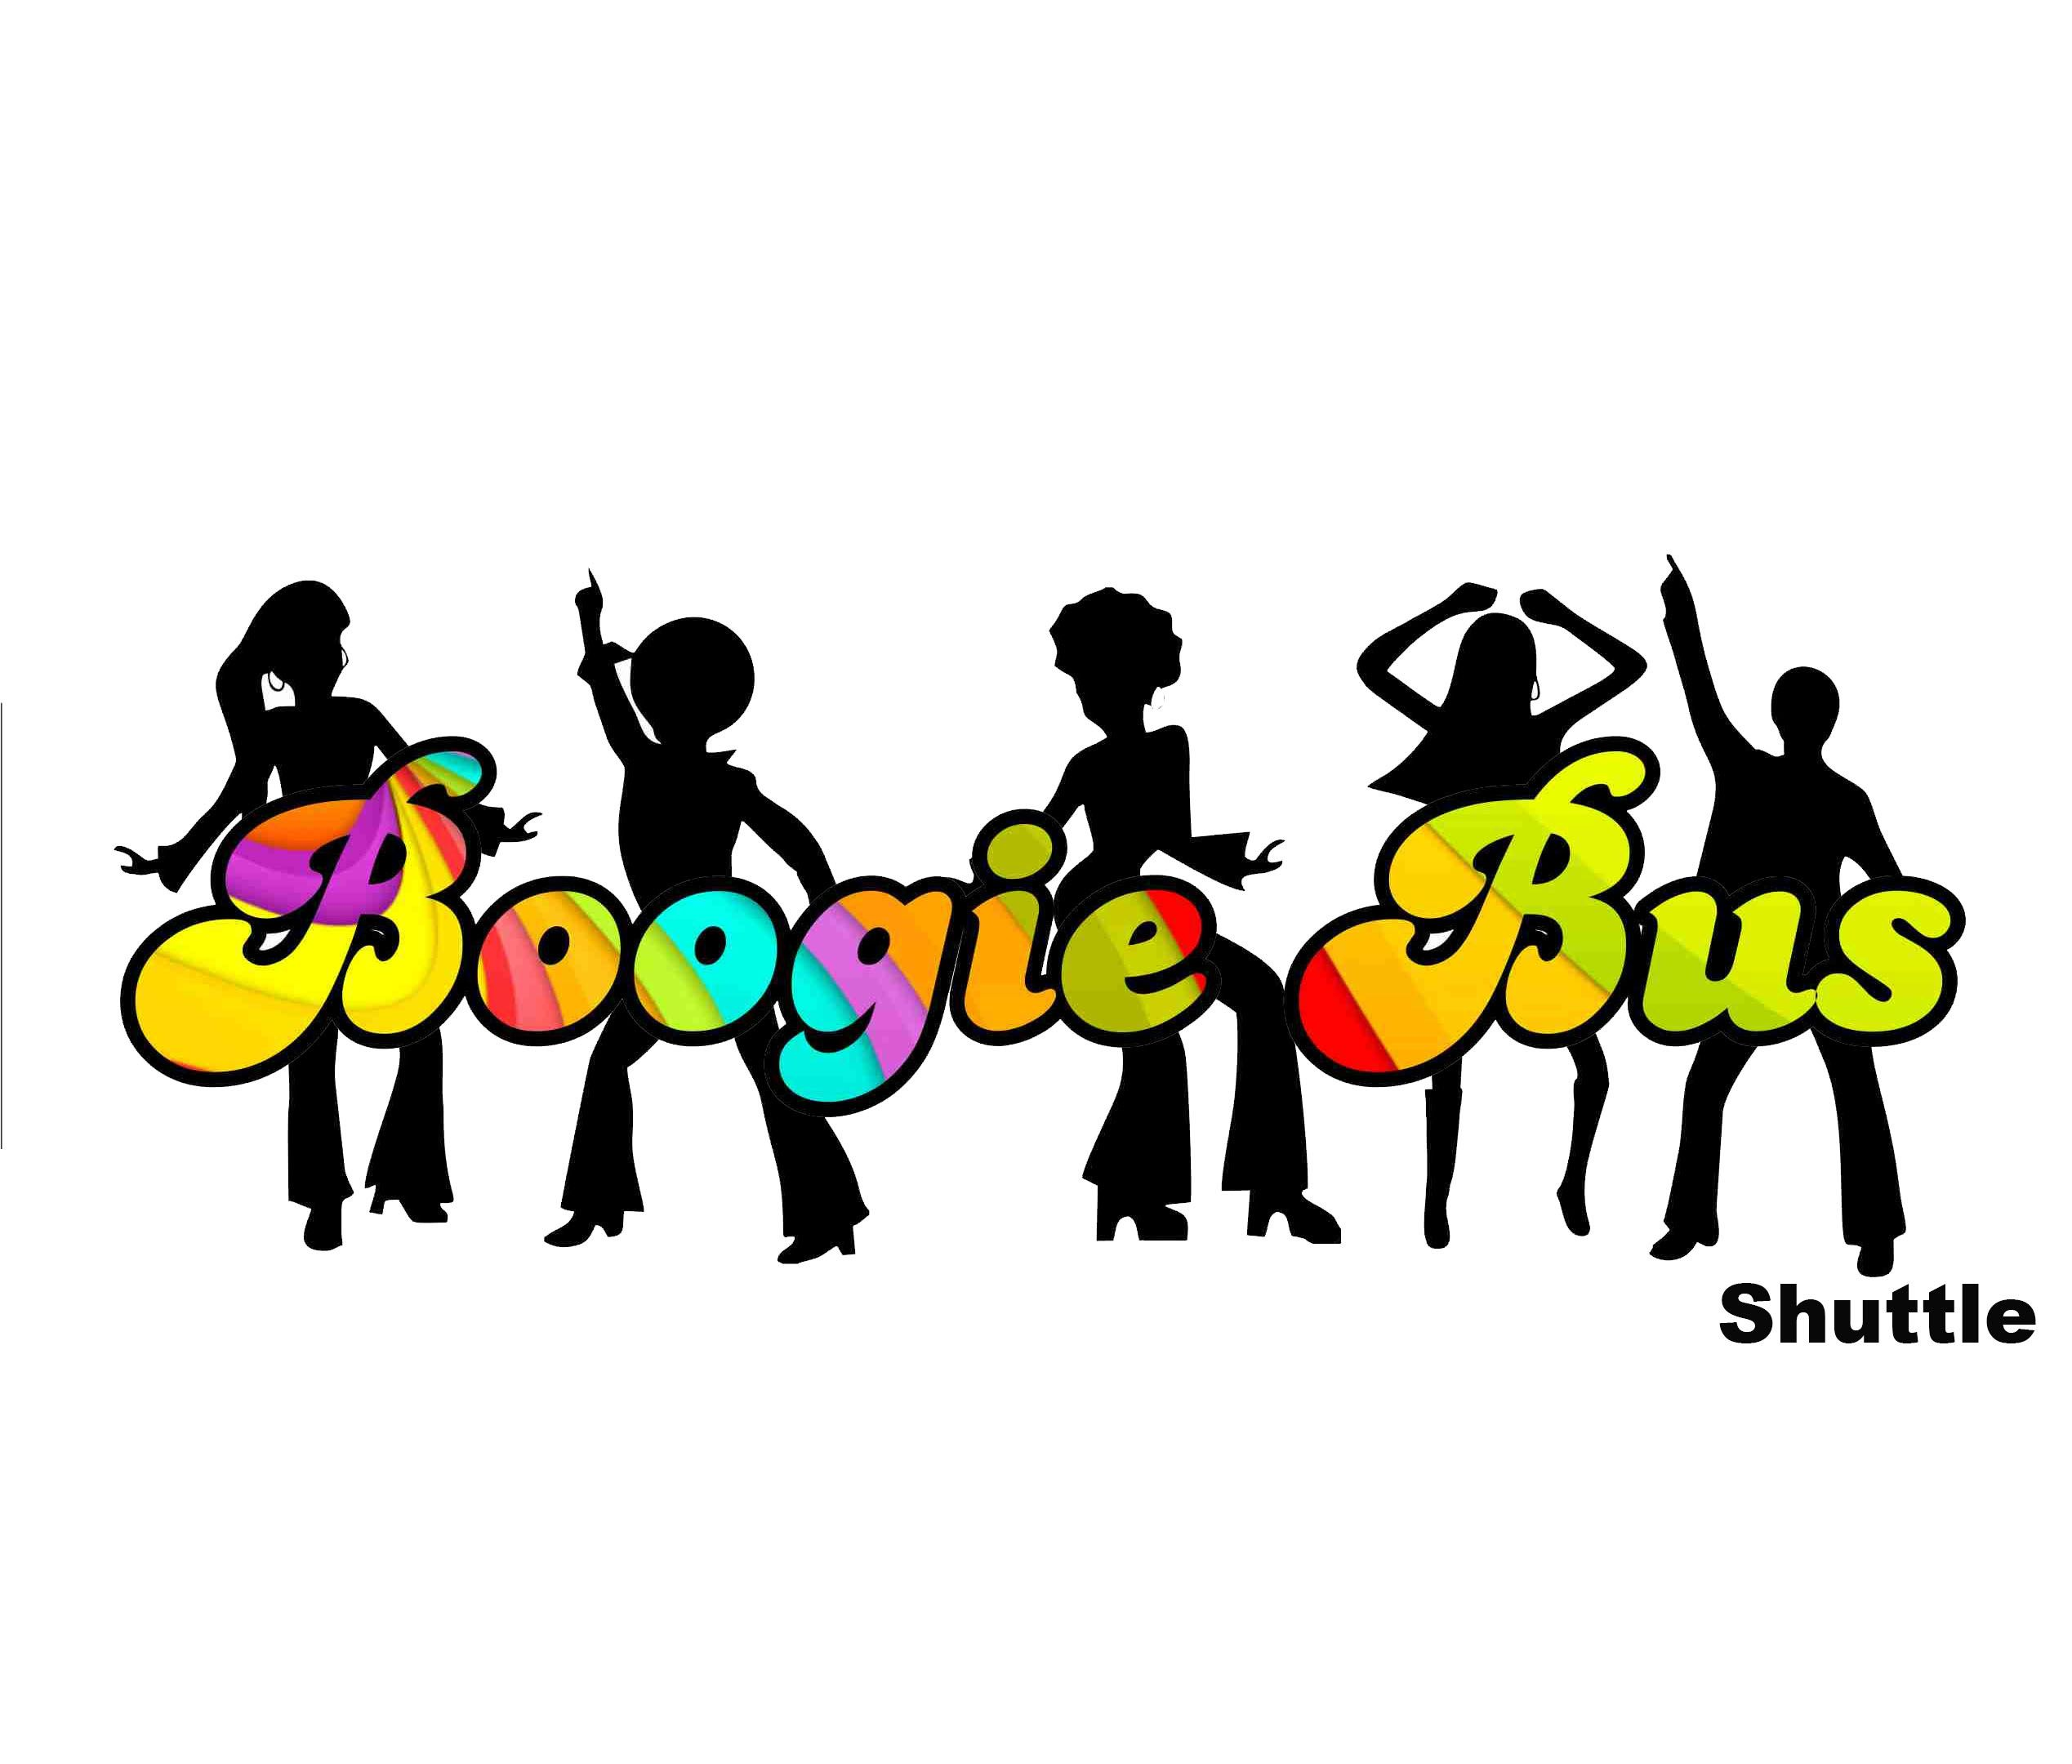 Boogie Bus Shuttle